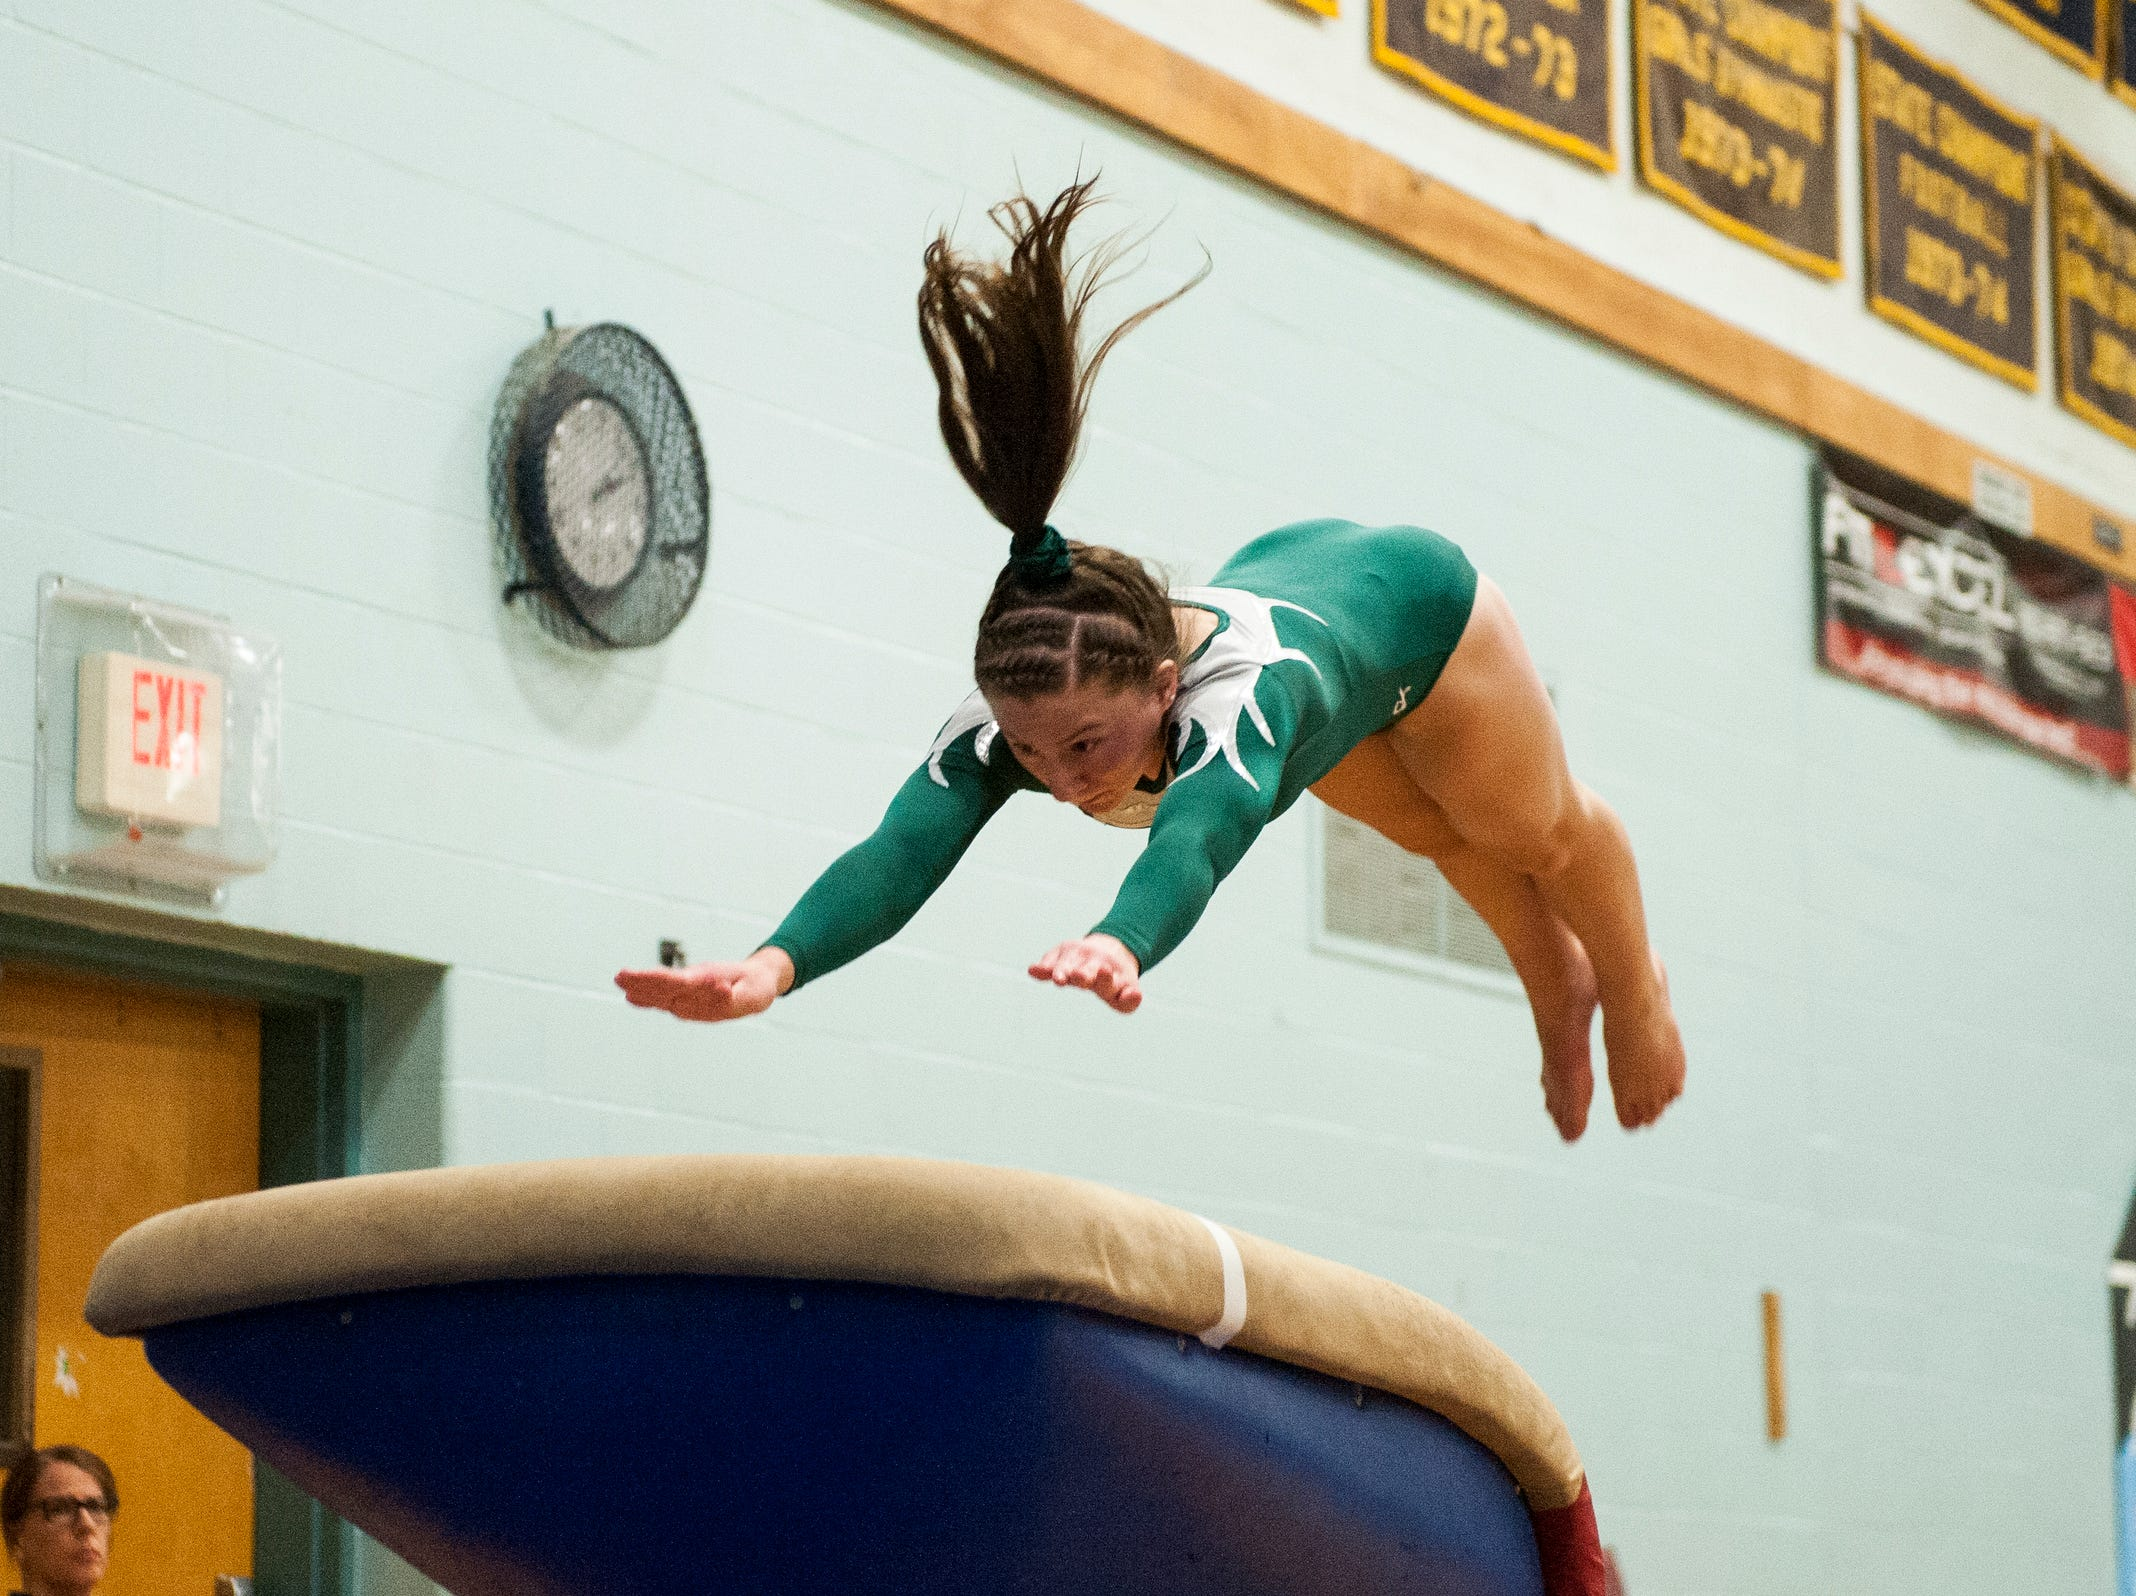 St. Johnsbury's Anna Cushing competes in the vault during the 2019 high school gymnastics championship at Essex High School on Saturday afternoon February 16, 2019 in Essex, Vermont.